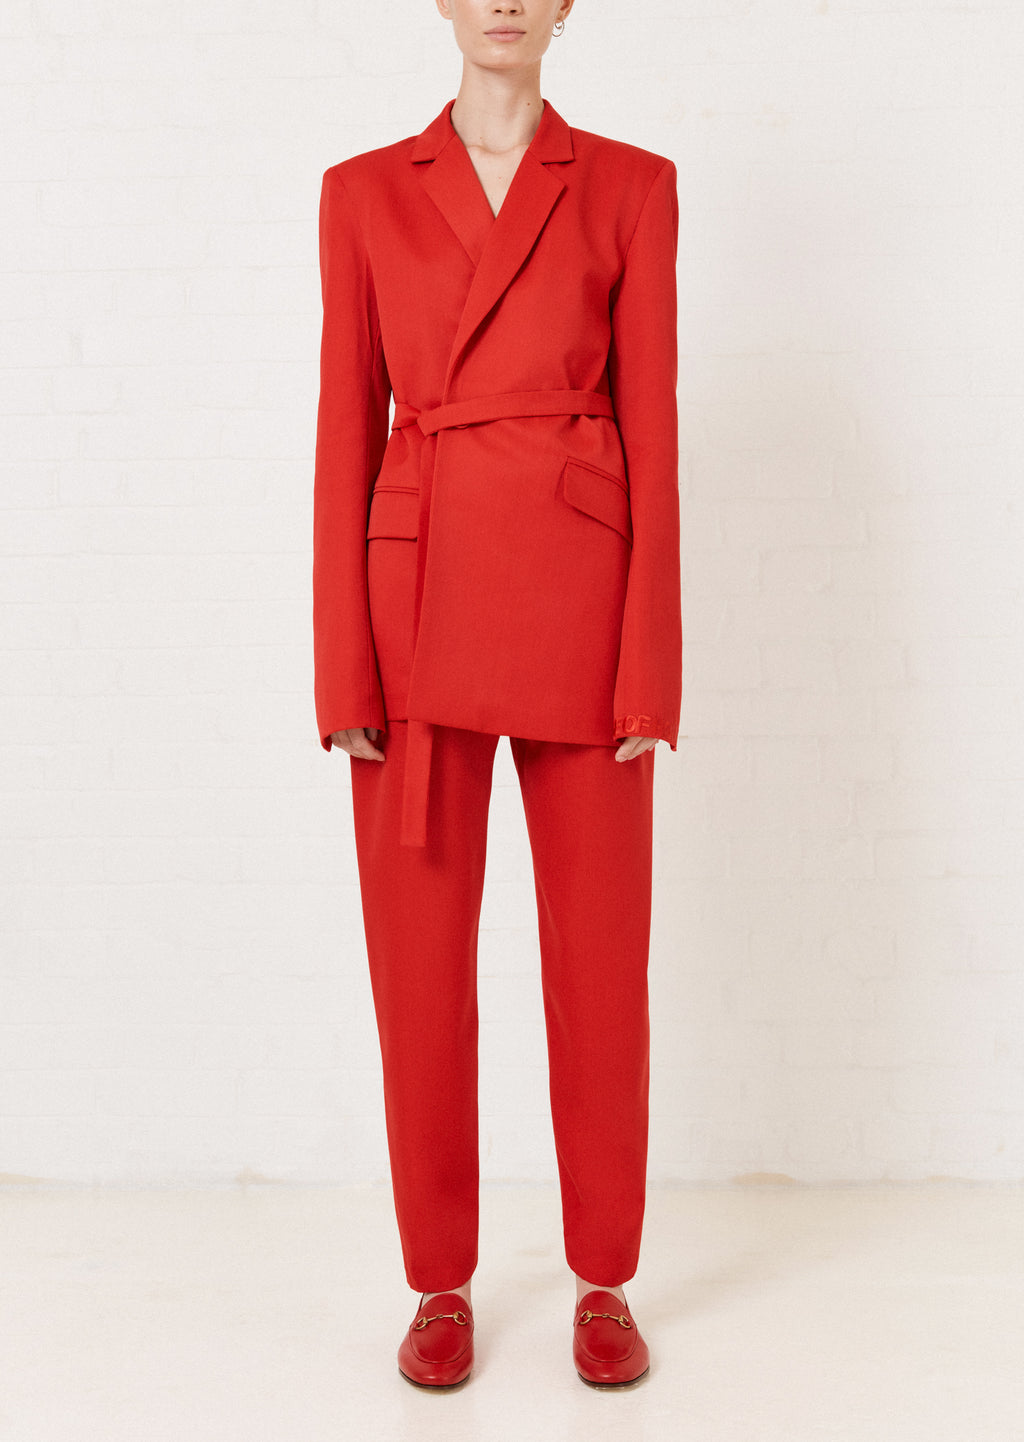 Red Tailored Suit Jacket